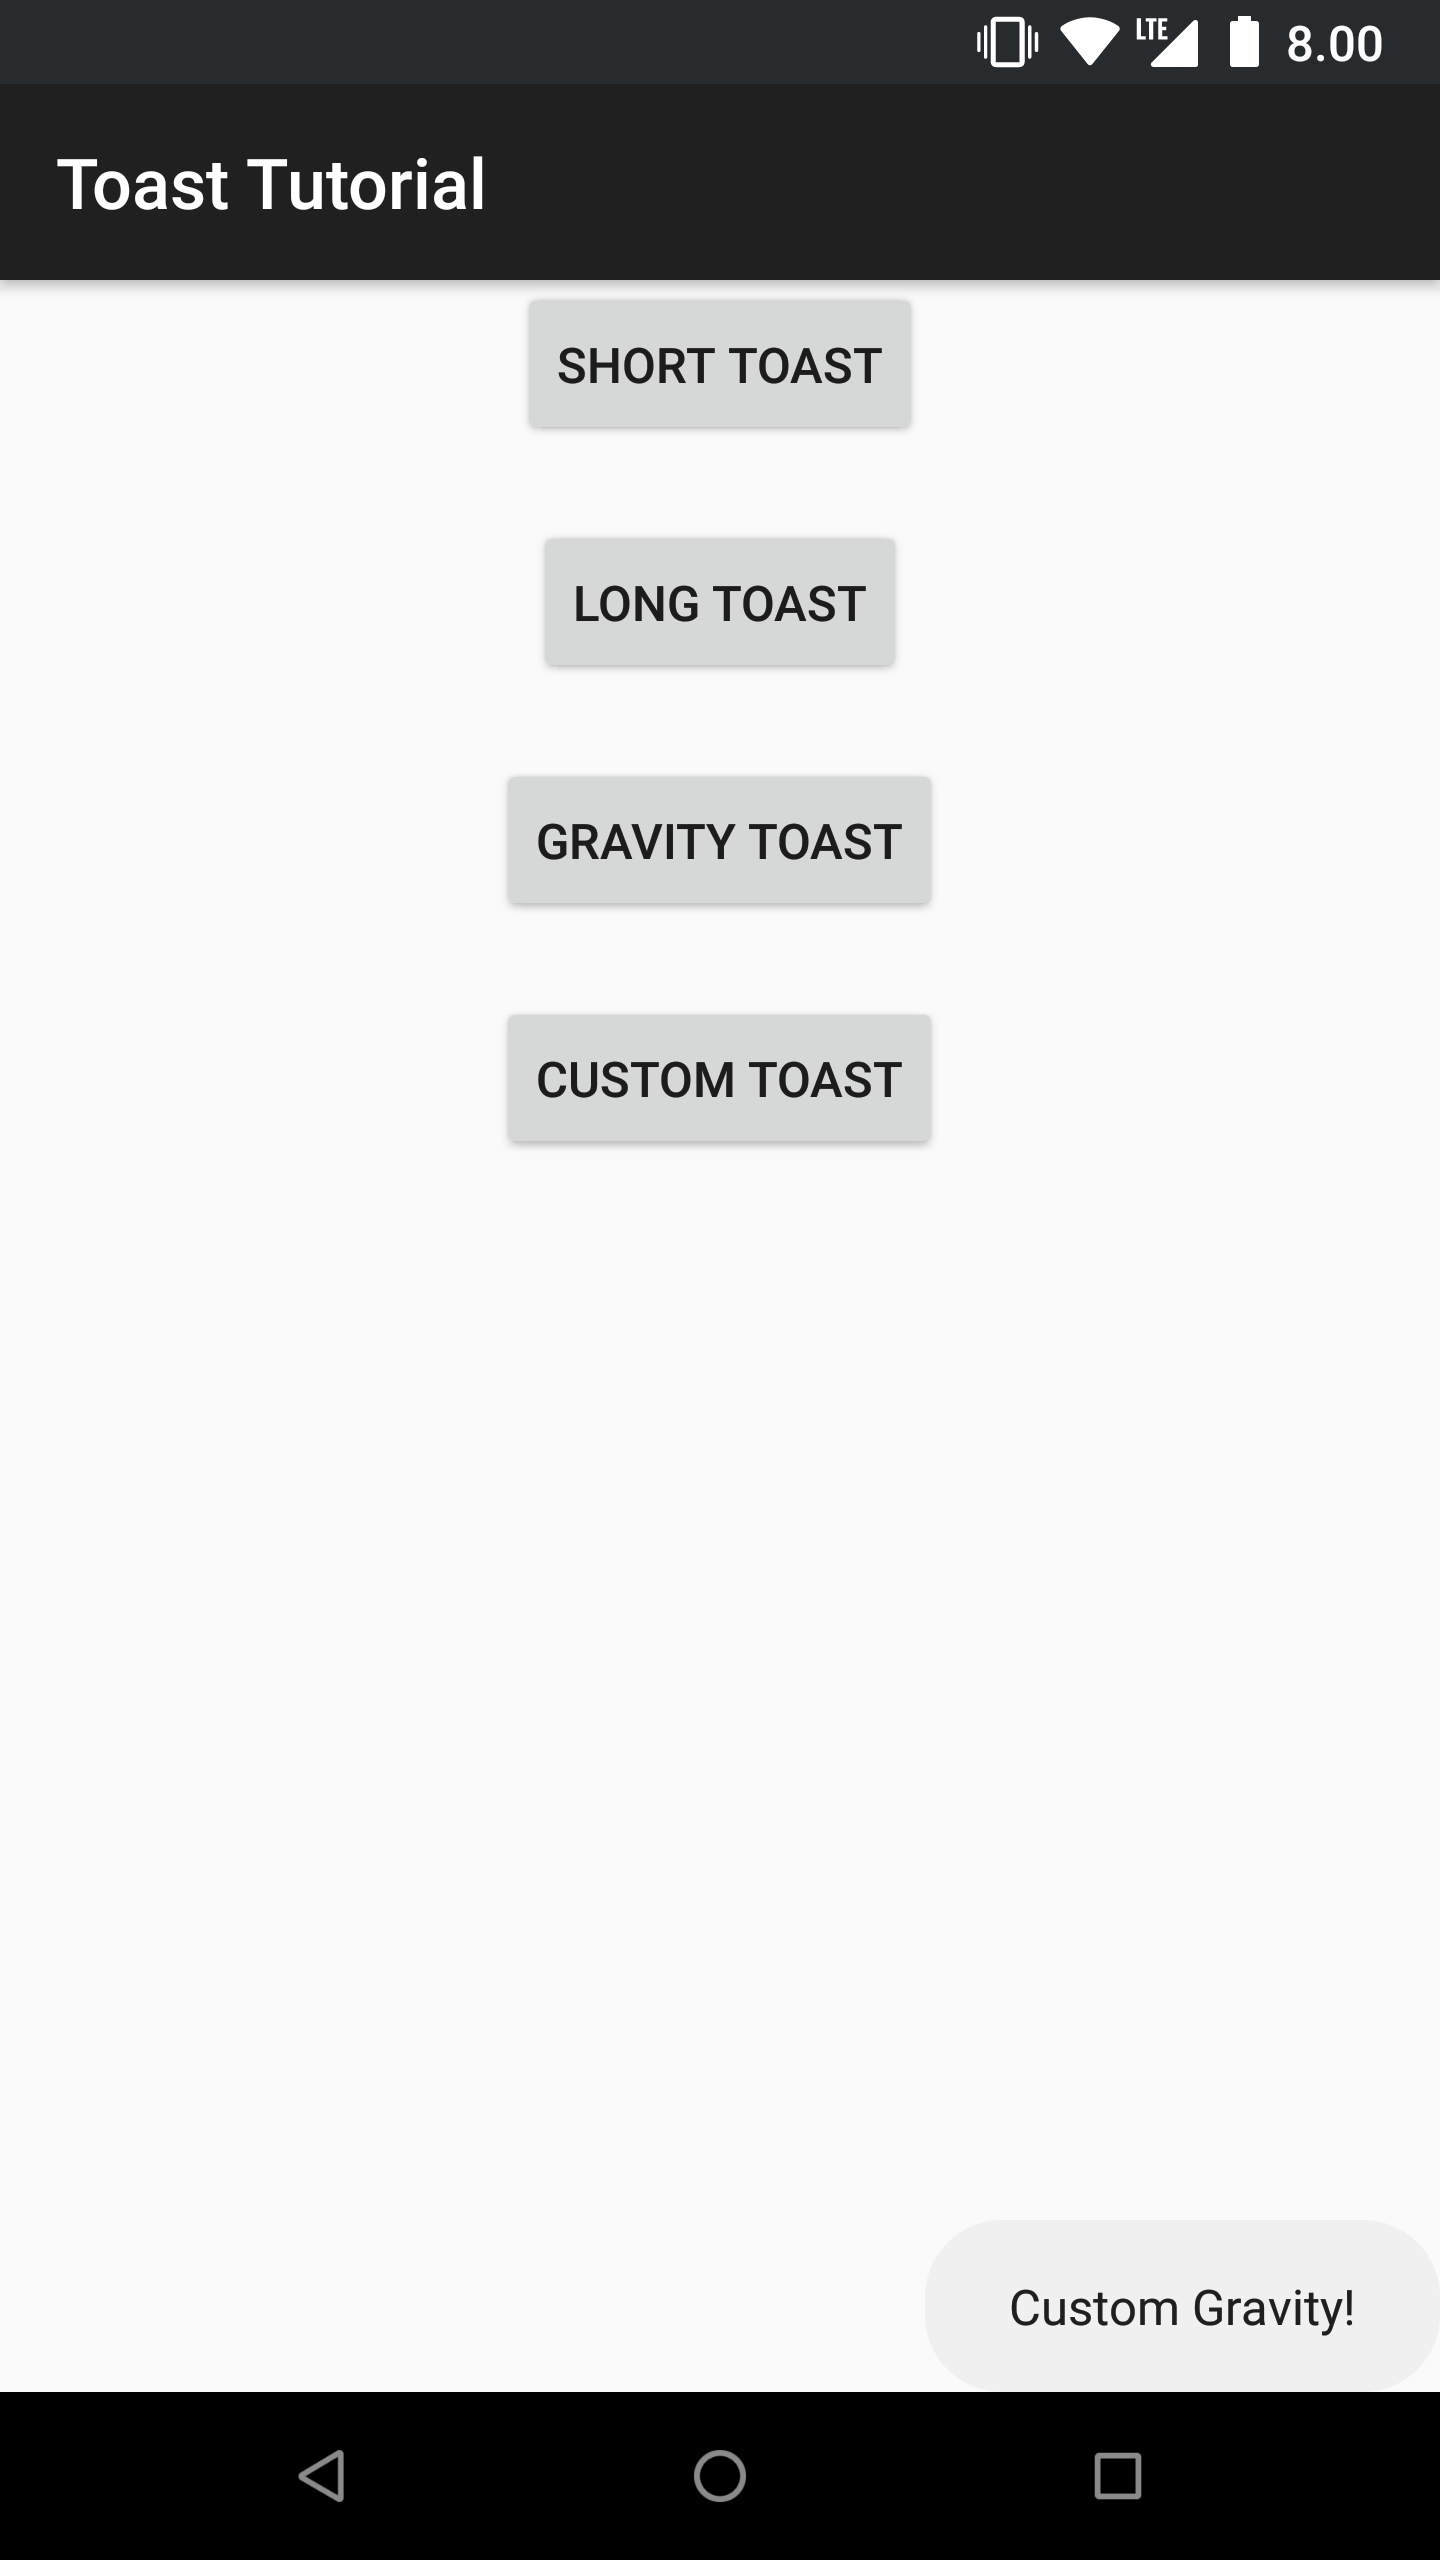 Toast with a custom gravity